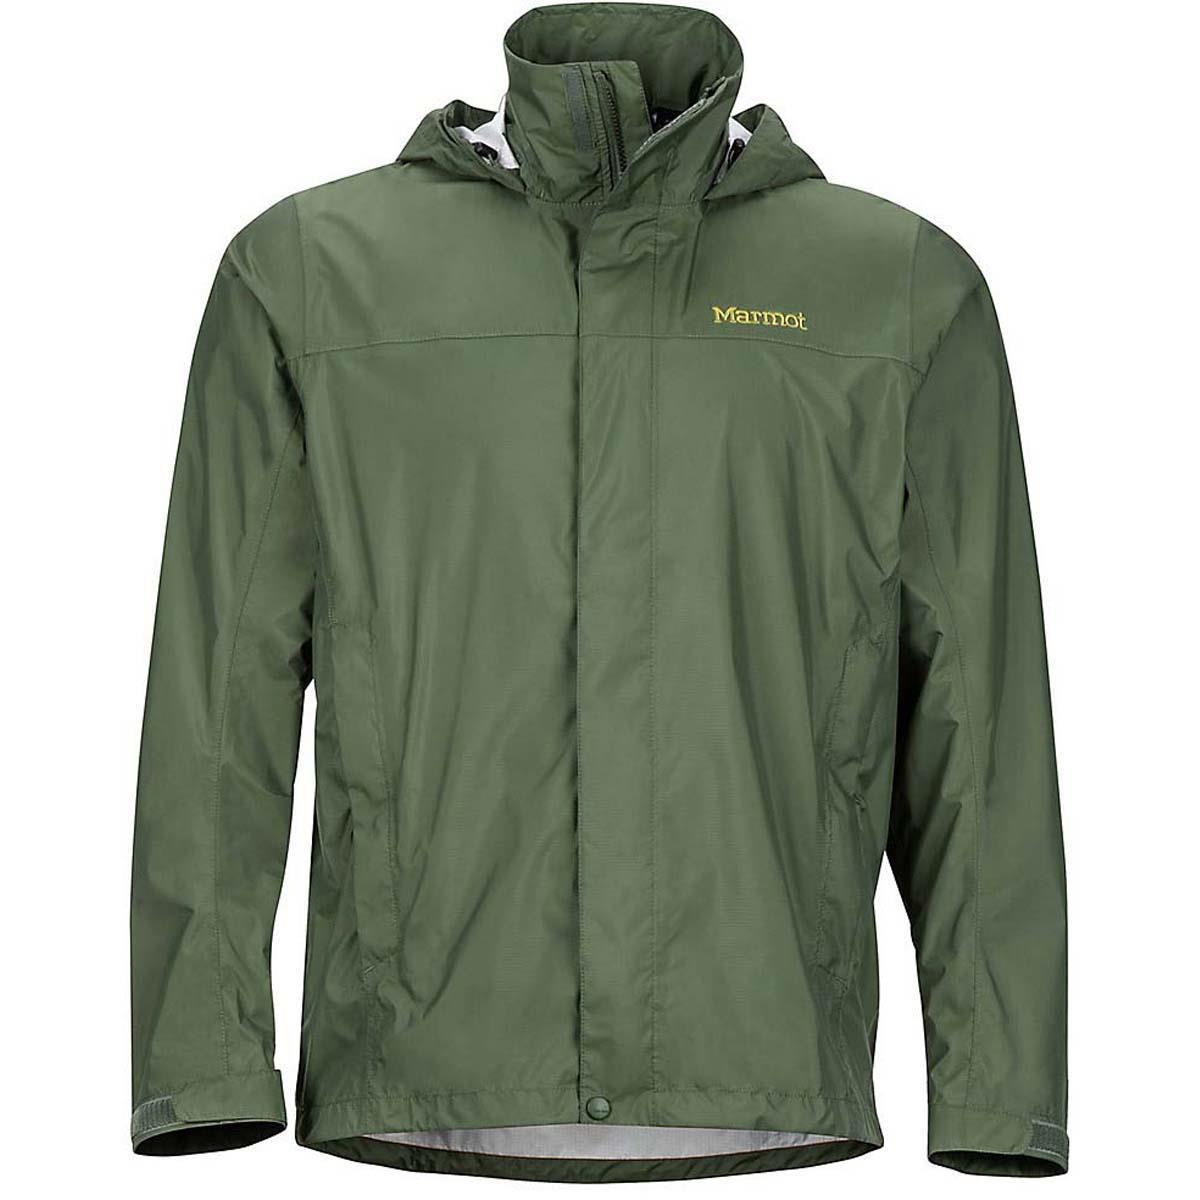 Marmot precip jacket review uk dating. meeting someone for the first time from a dating website.